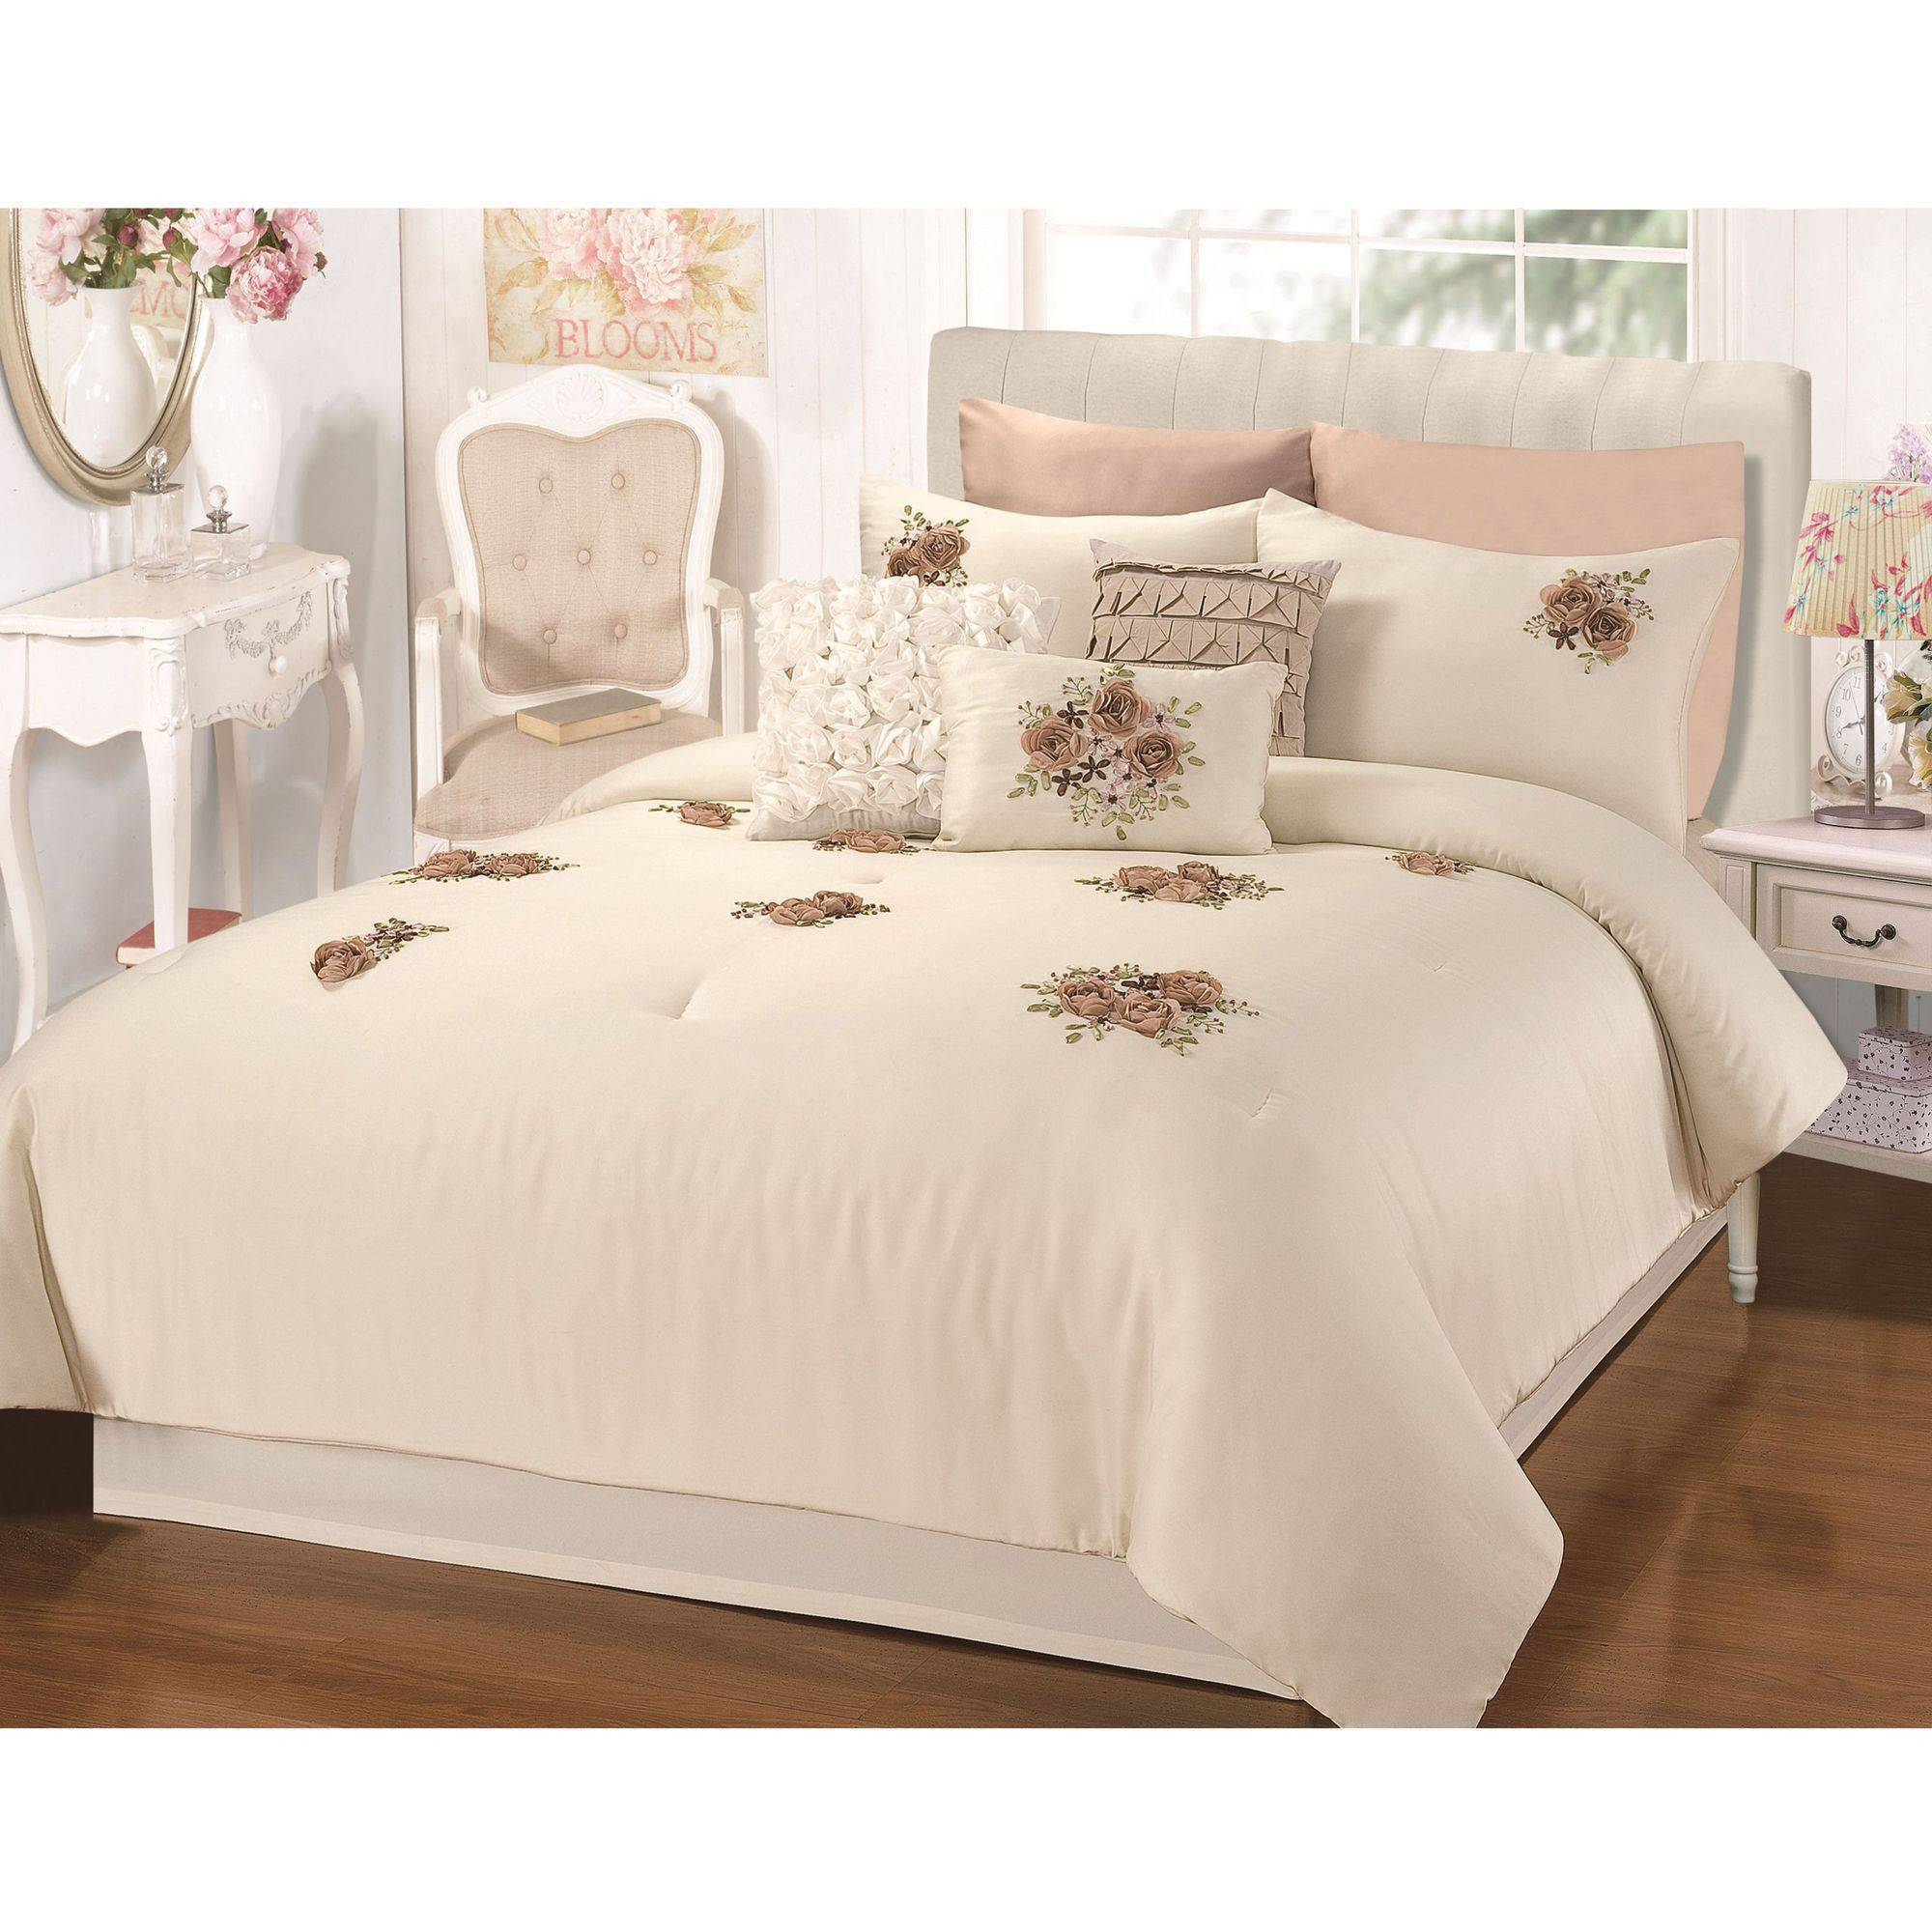 aqua shipping bath heidi product the today bedding set madison gray barn comforter overstock piece percale free sleeping park hills cotton